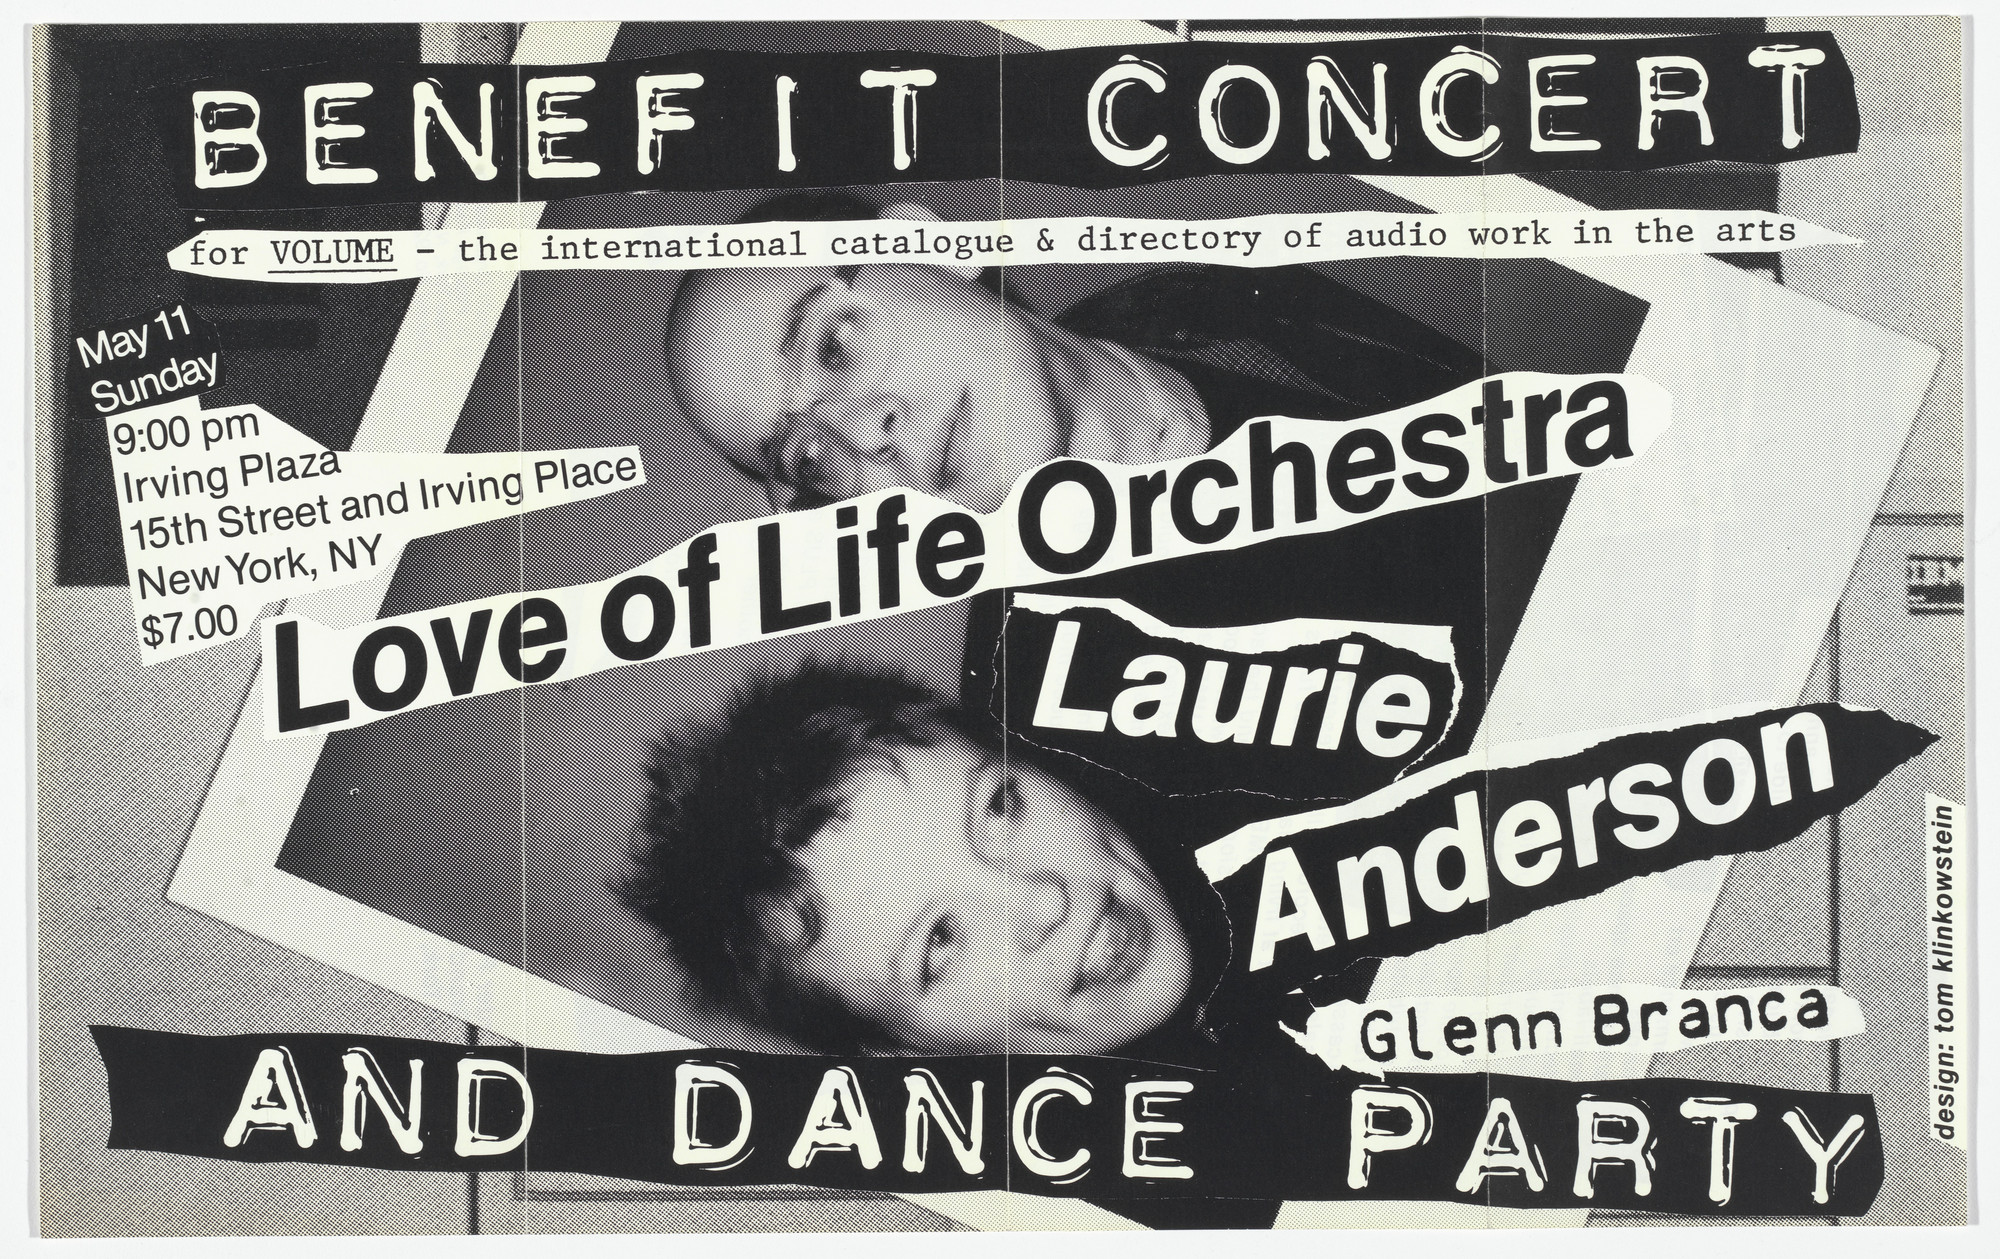 Thomas Klinkowstein. Love of Life Orchestra, Laurie Anderson and Glenn Branca (Poster for benefit concert and dance party). 1980